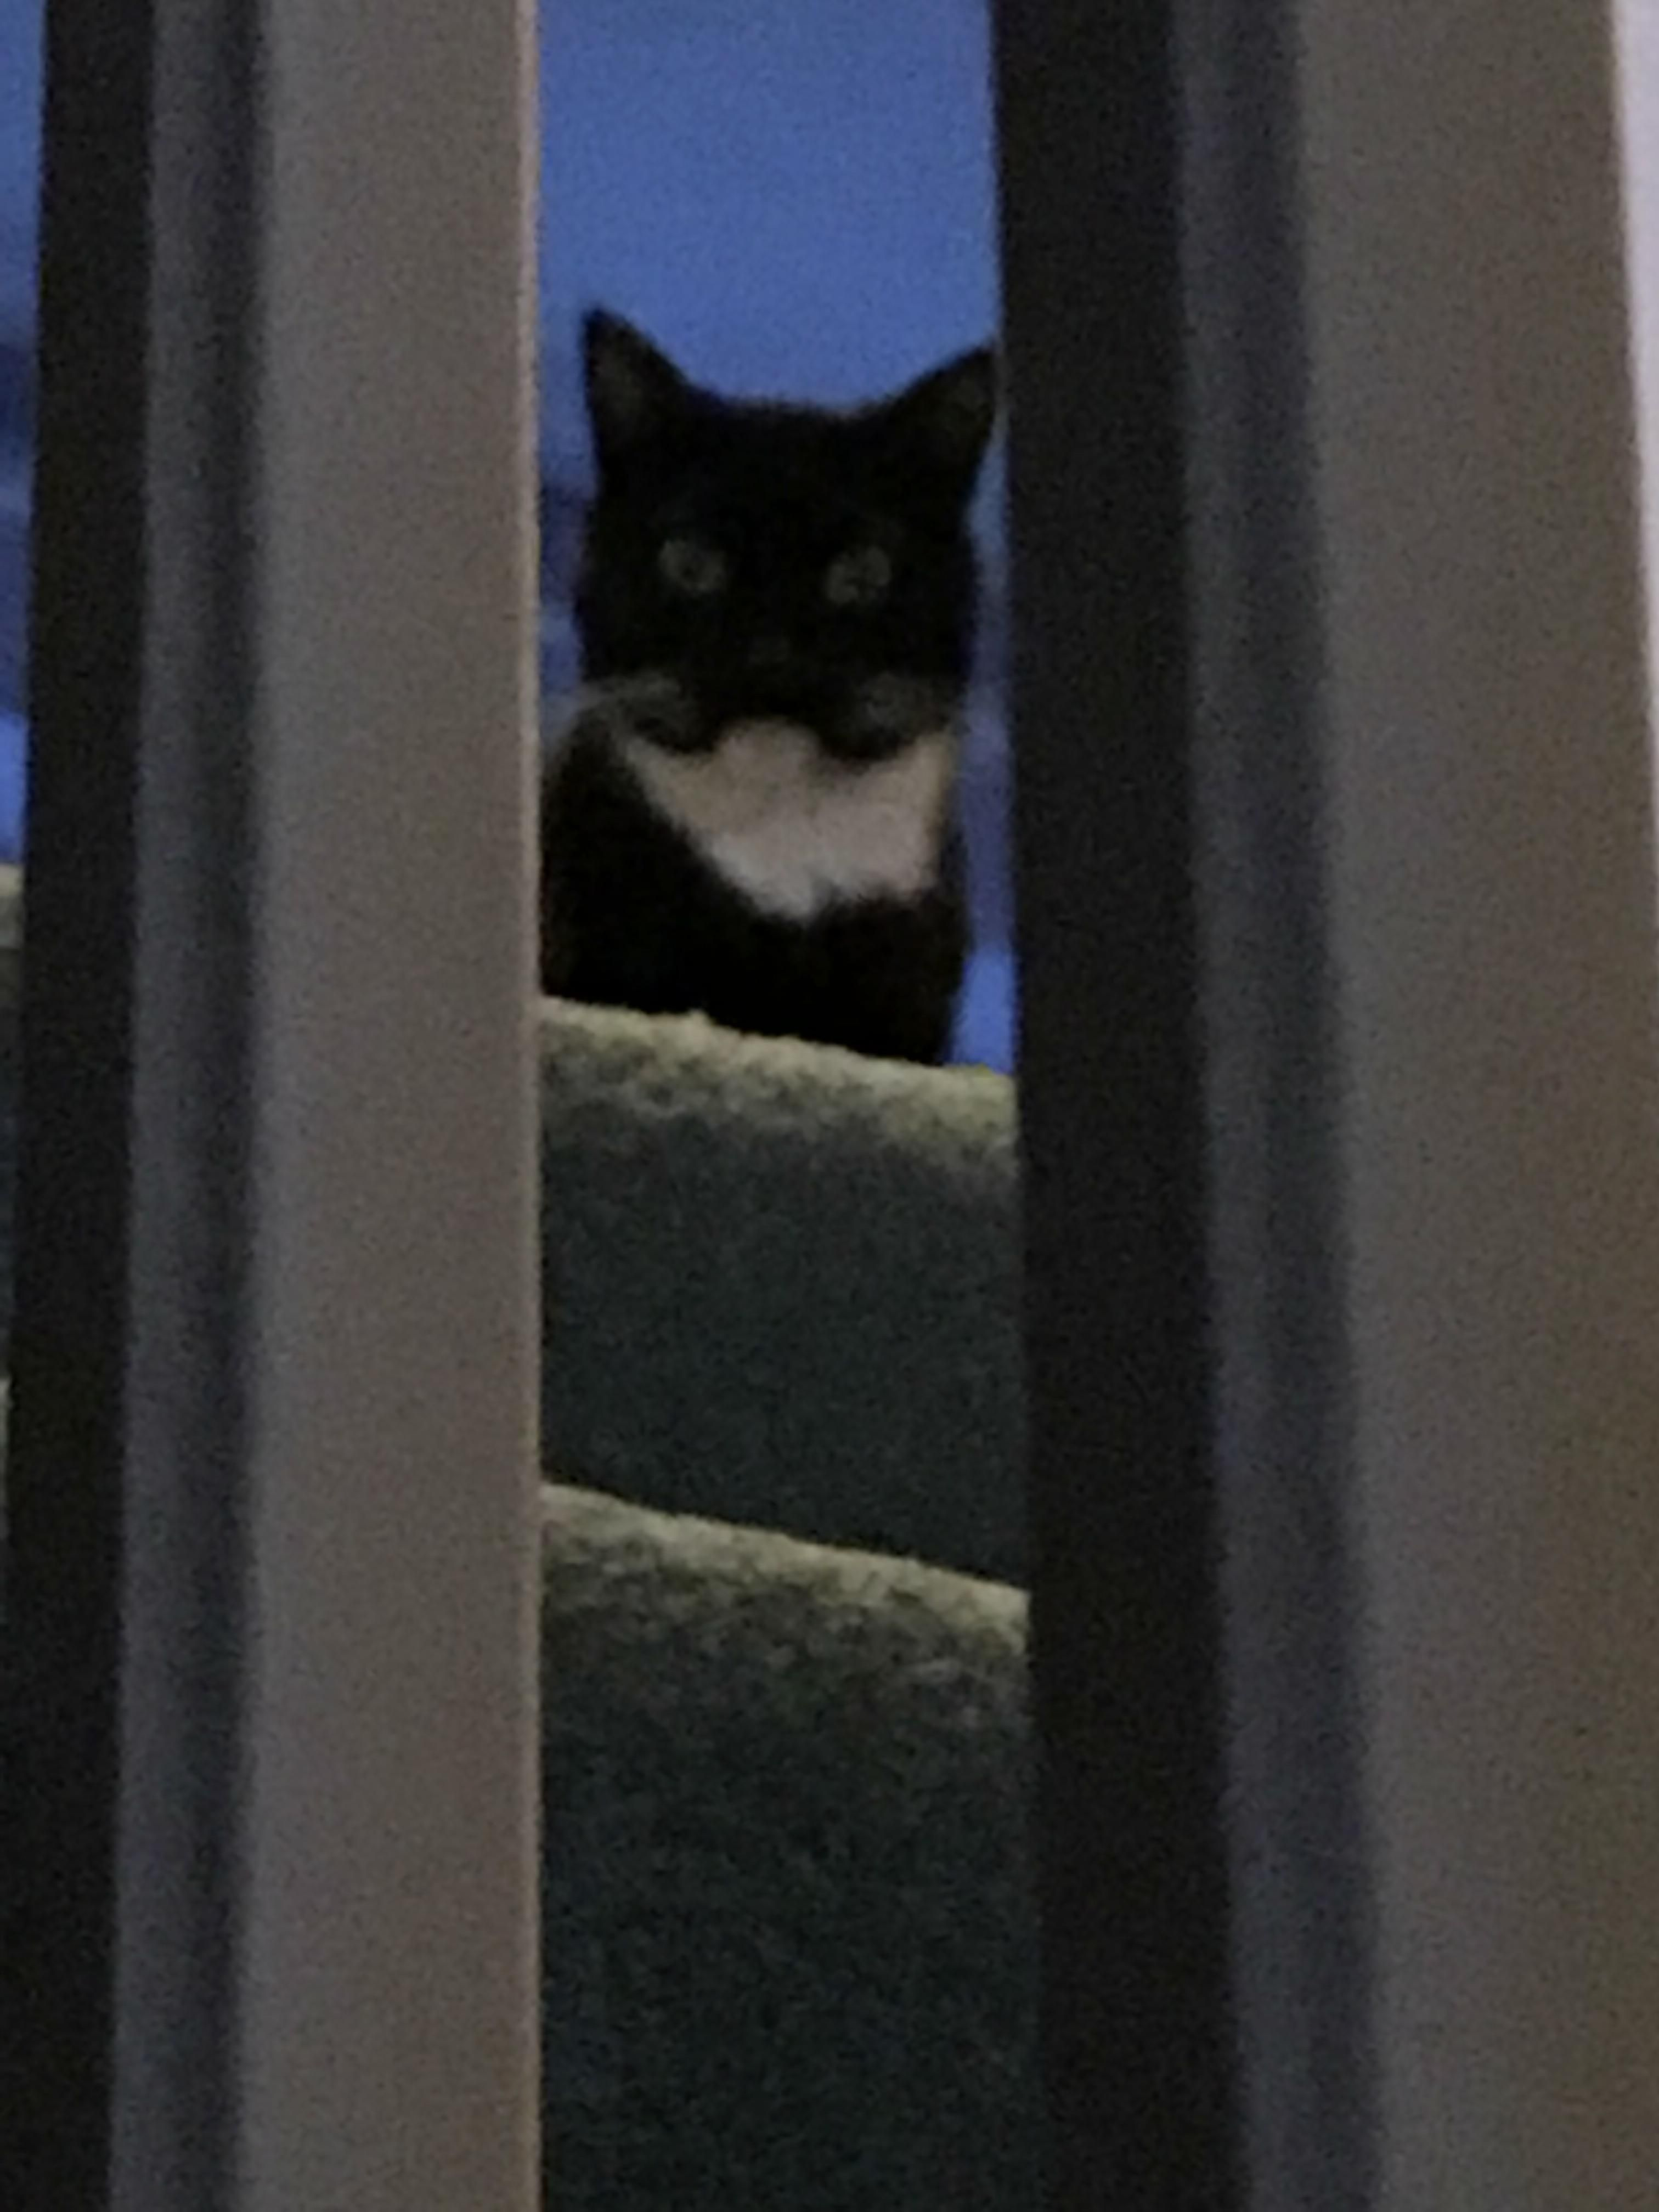 My Cat Isnt Allowed Upstairs Alone After A Pee Incident Every Now And Then She Shoots Up There And Will Look Down On Me Stubbornly Kittens Cutest Cats Acting